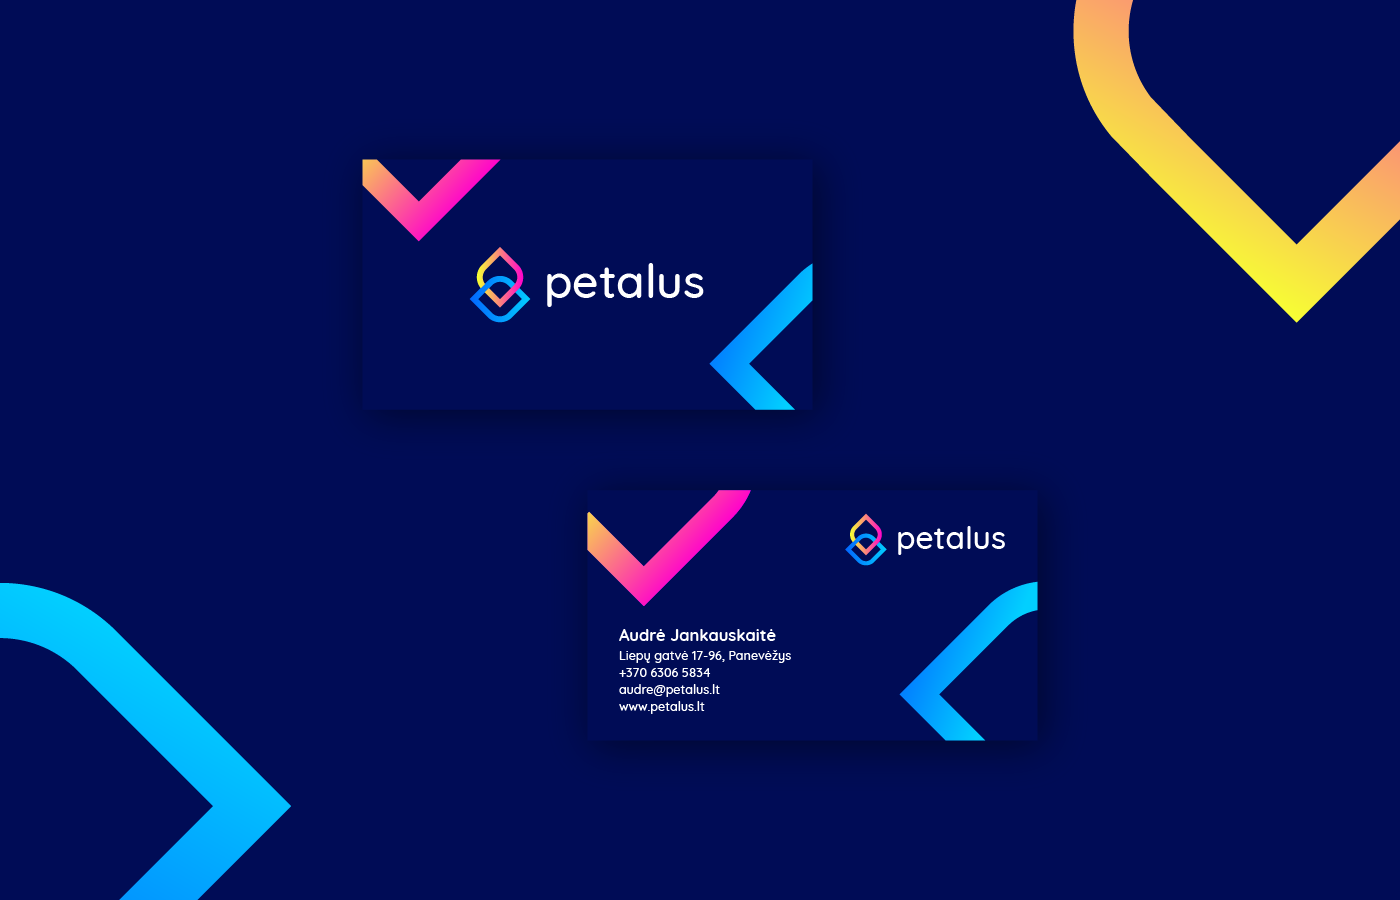 petalus-business-card